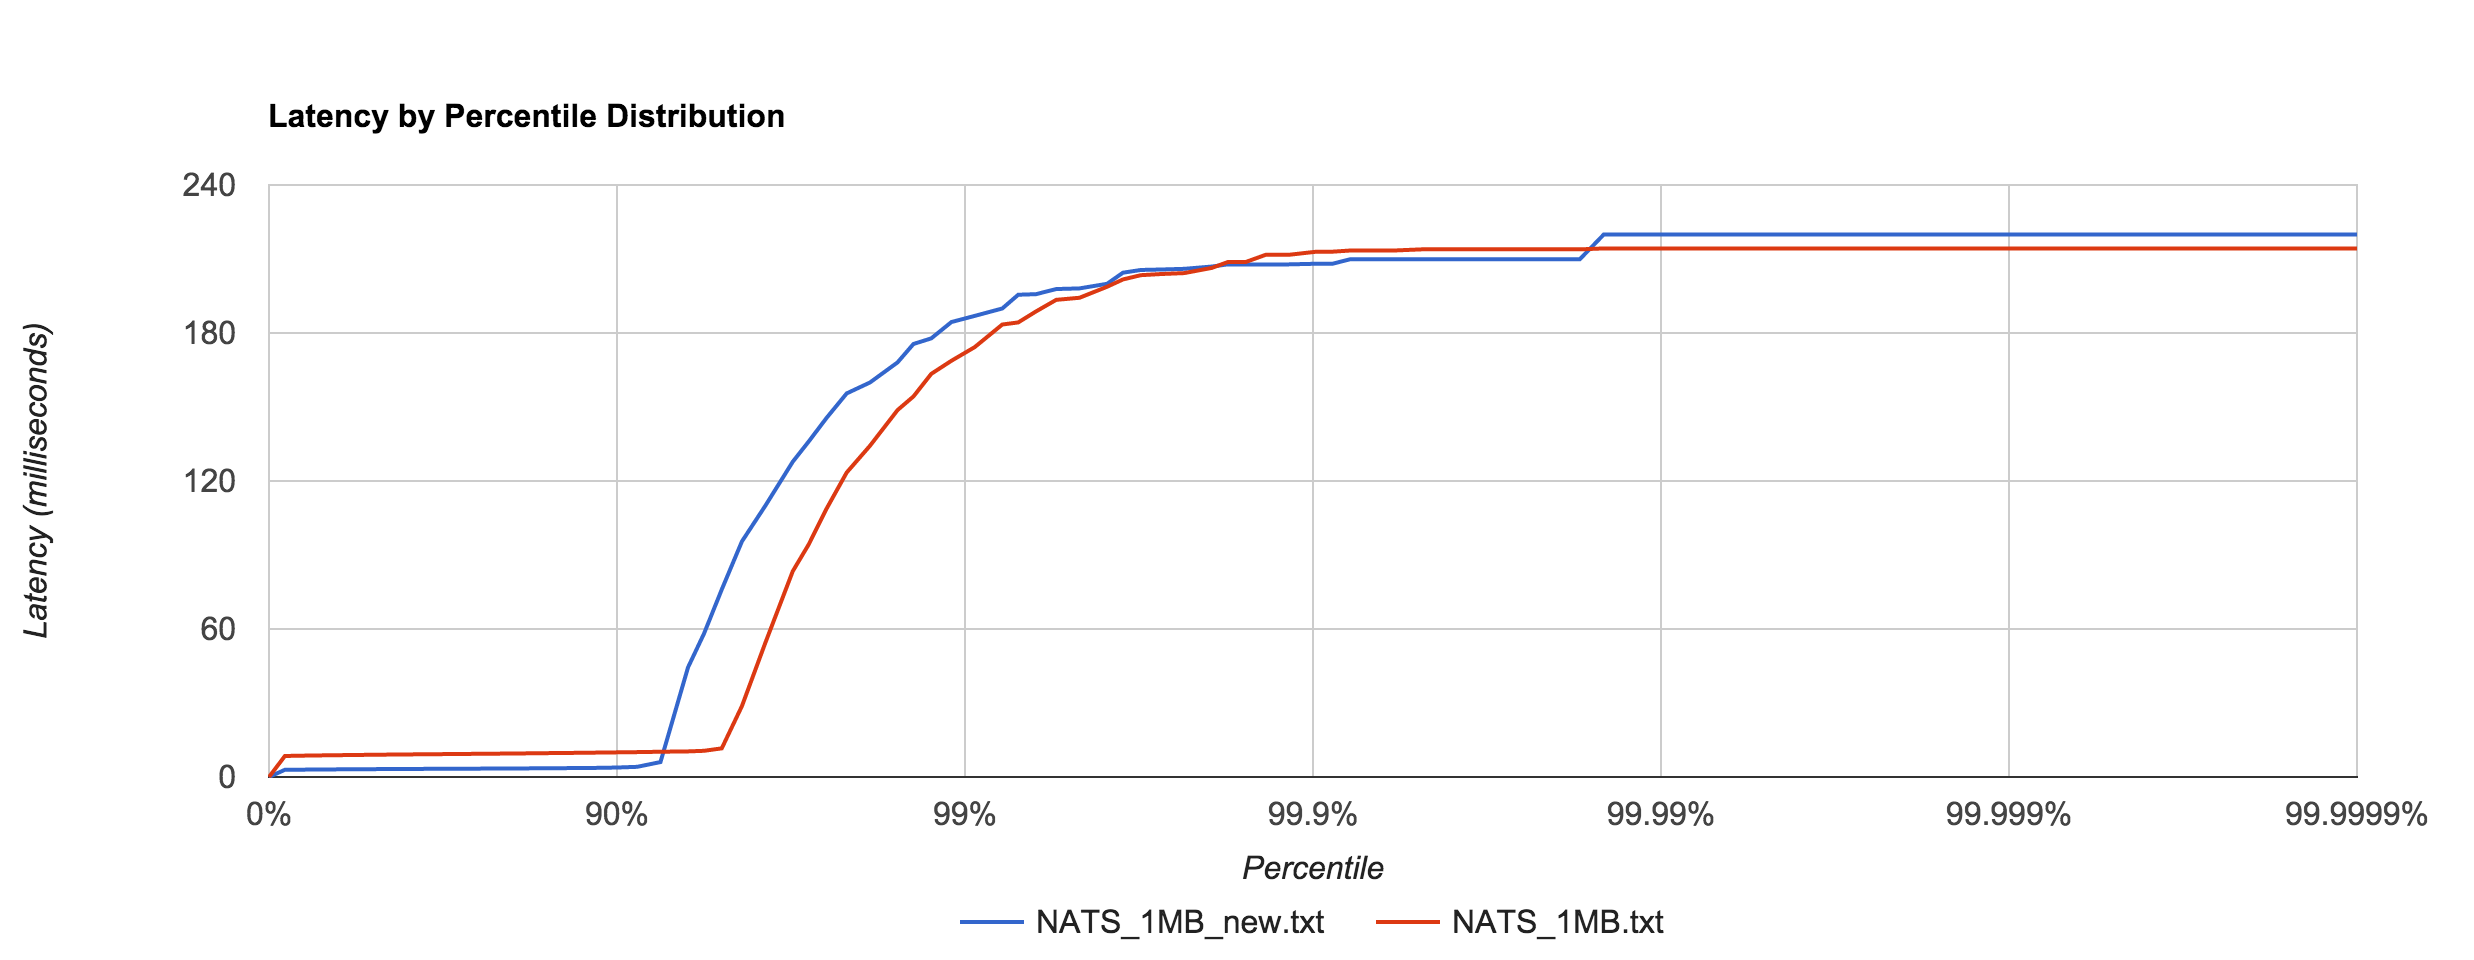 NATS_1MB_optimization_latency